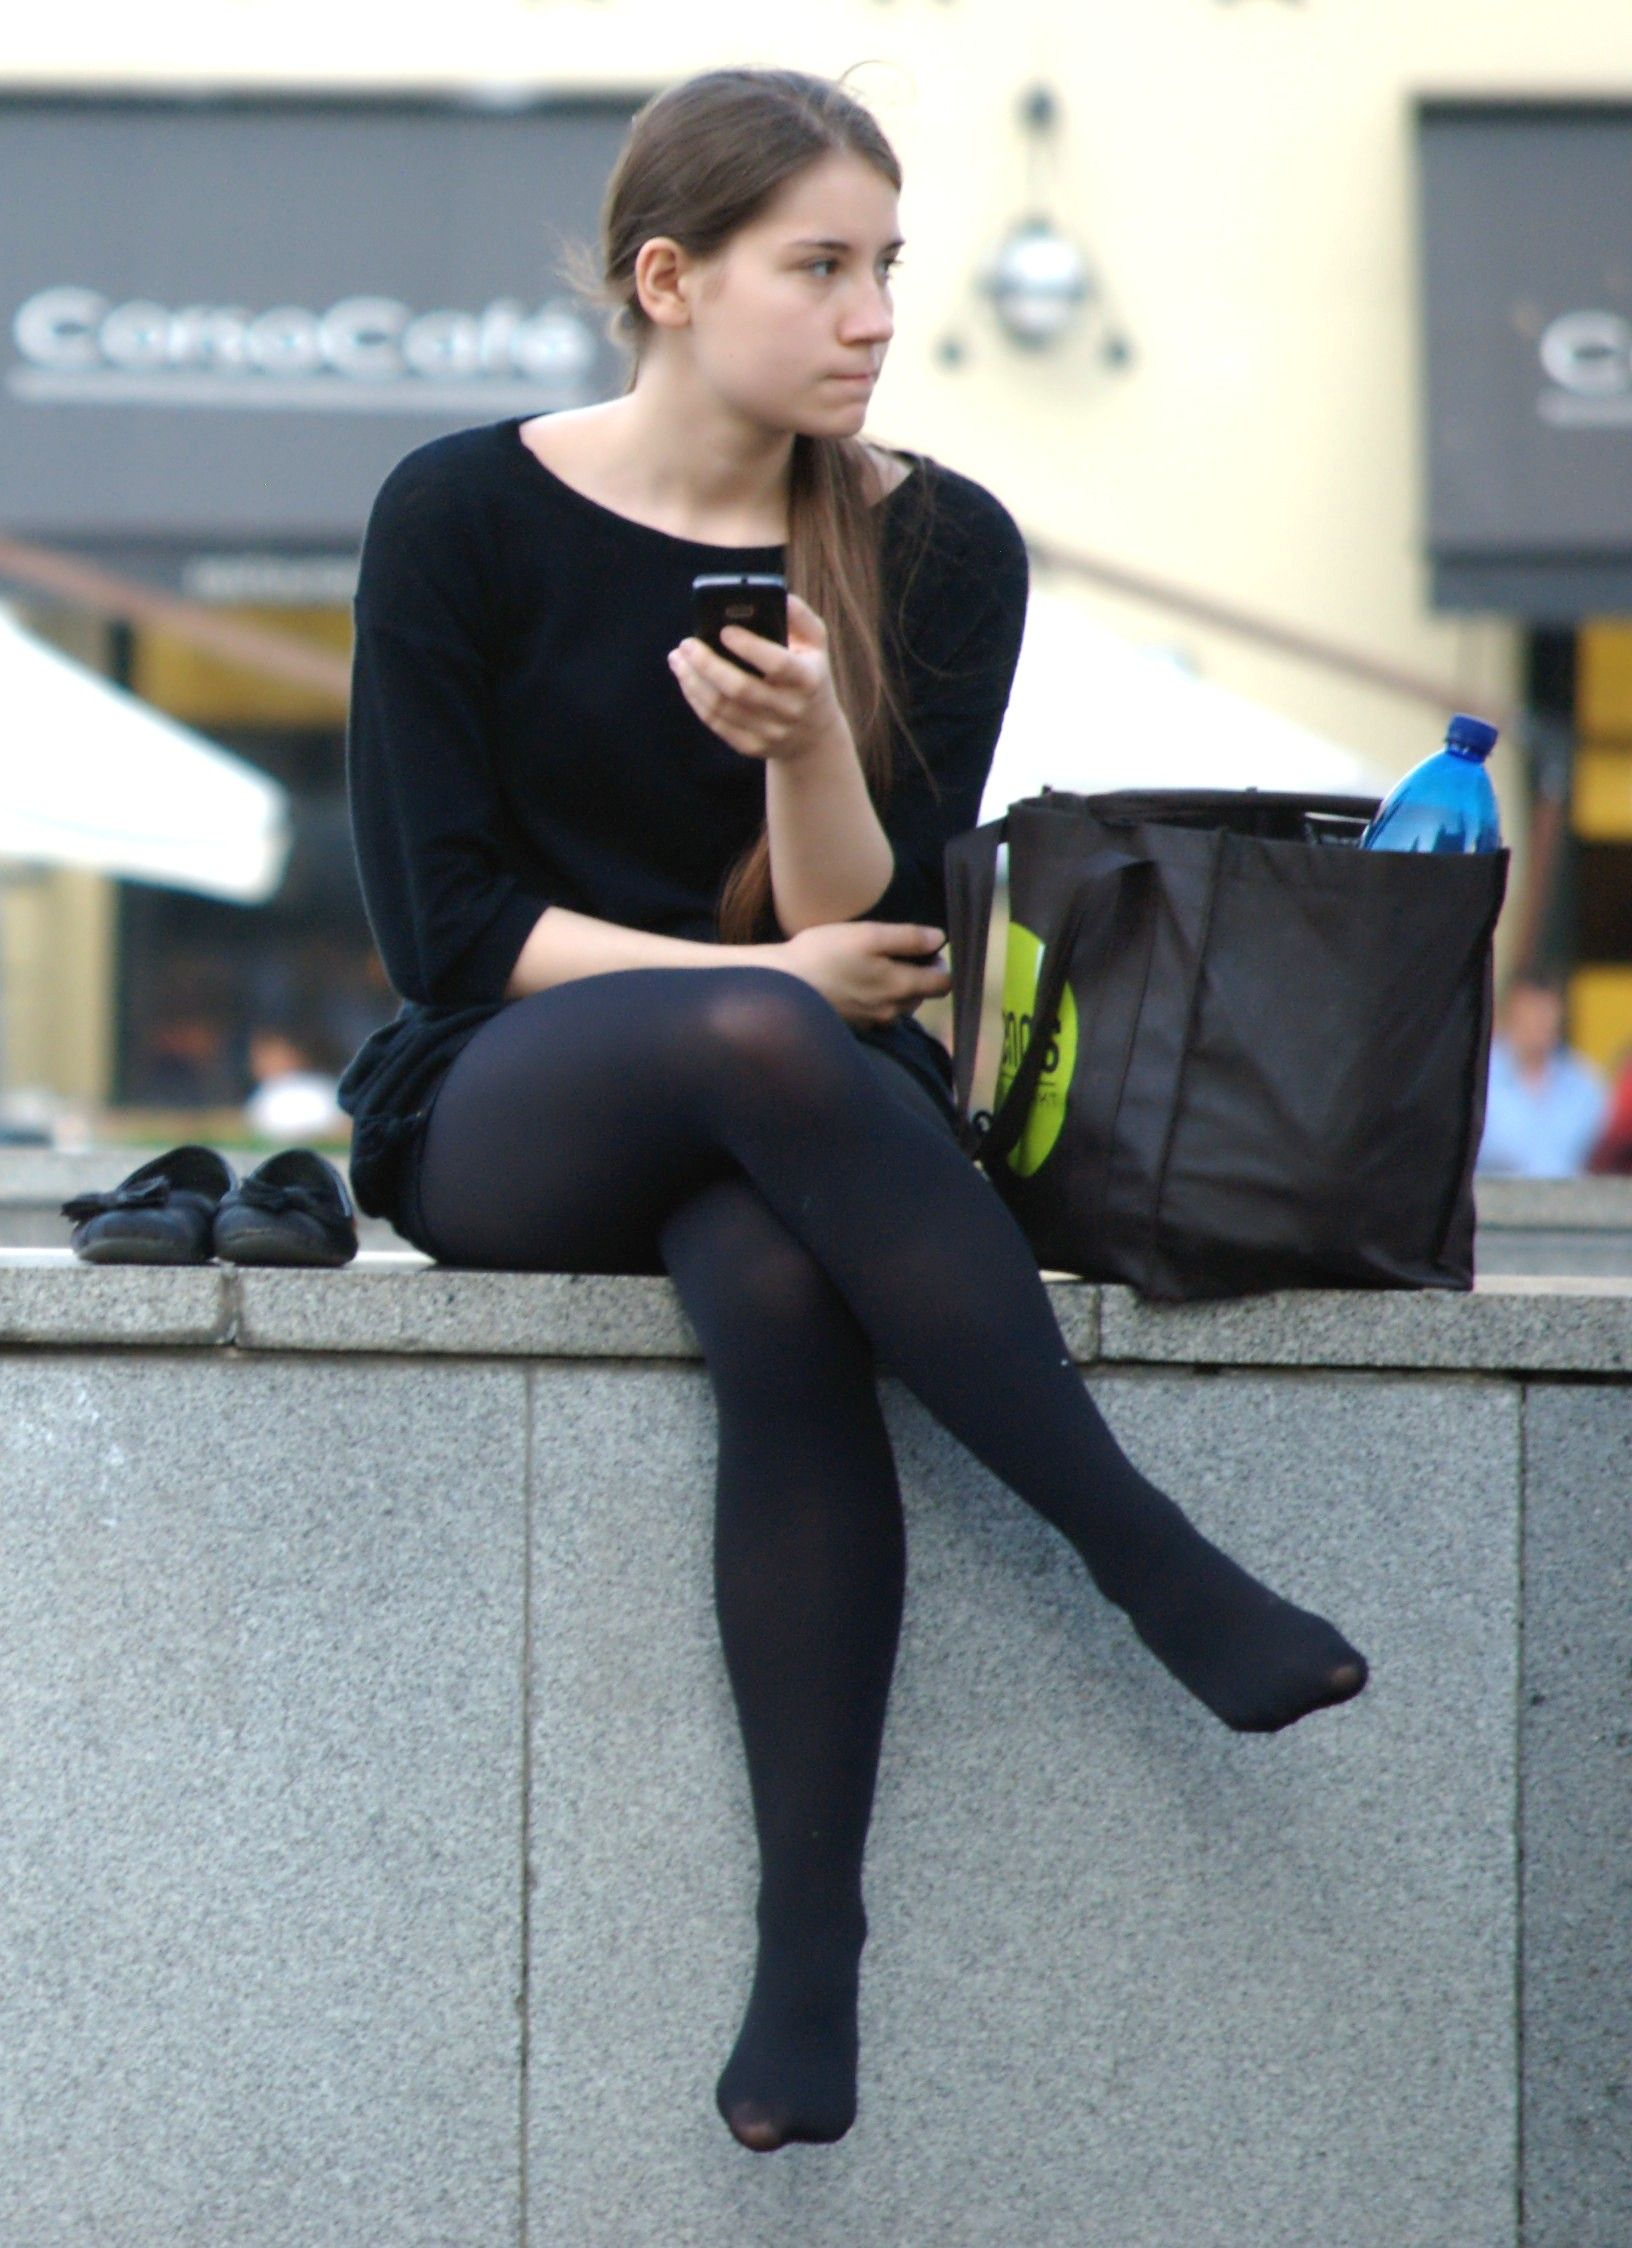 Candid outdoor pantyhose pictures understand you